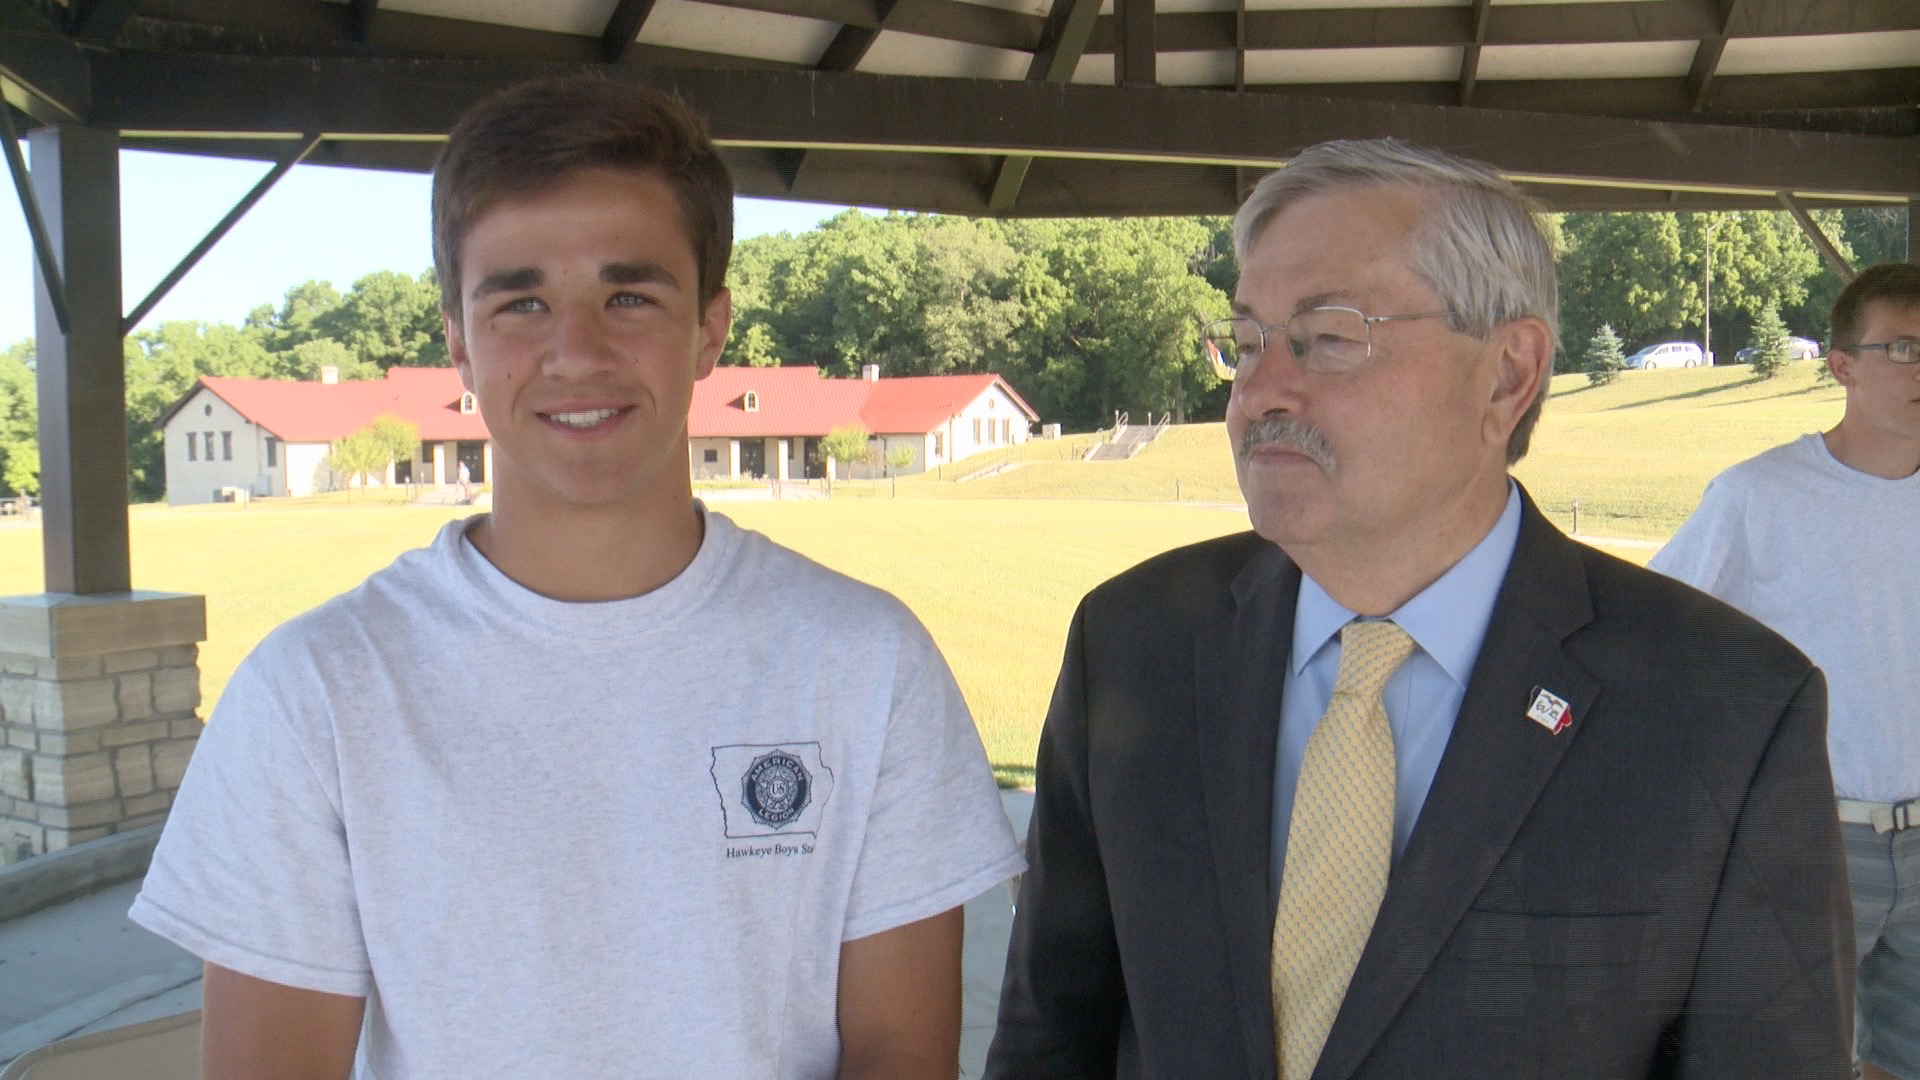 Conner Ascherl of MOC Floyd Valley School in Orange City was elected 2016 Governor of Hawkeye Boys State, got some advice from Governor Branstad. ( Roger Riley WHO-HD)